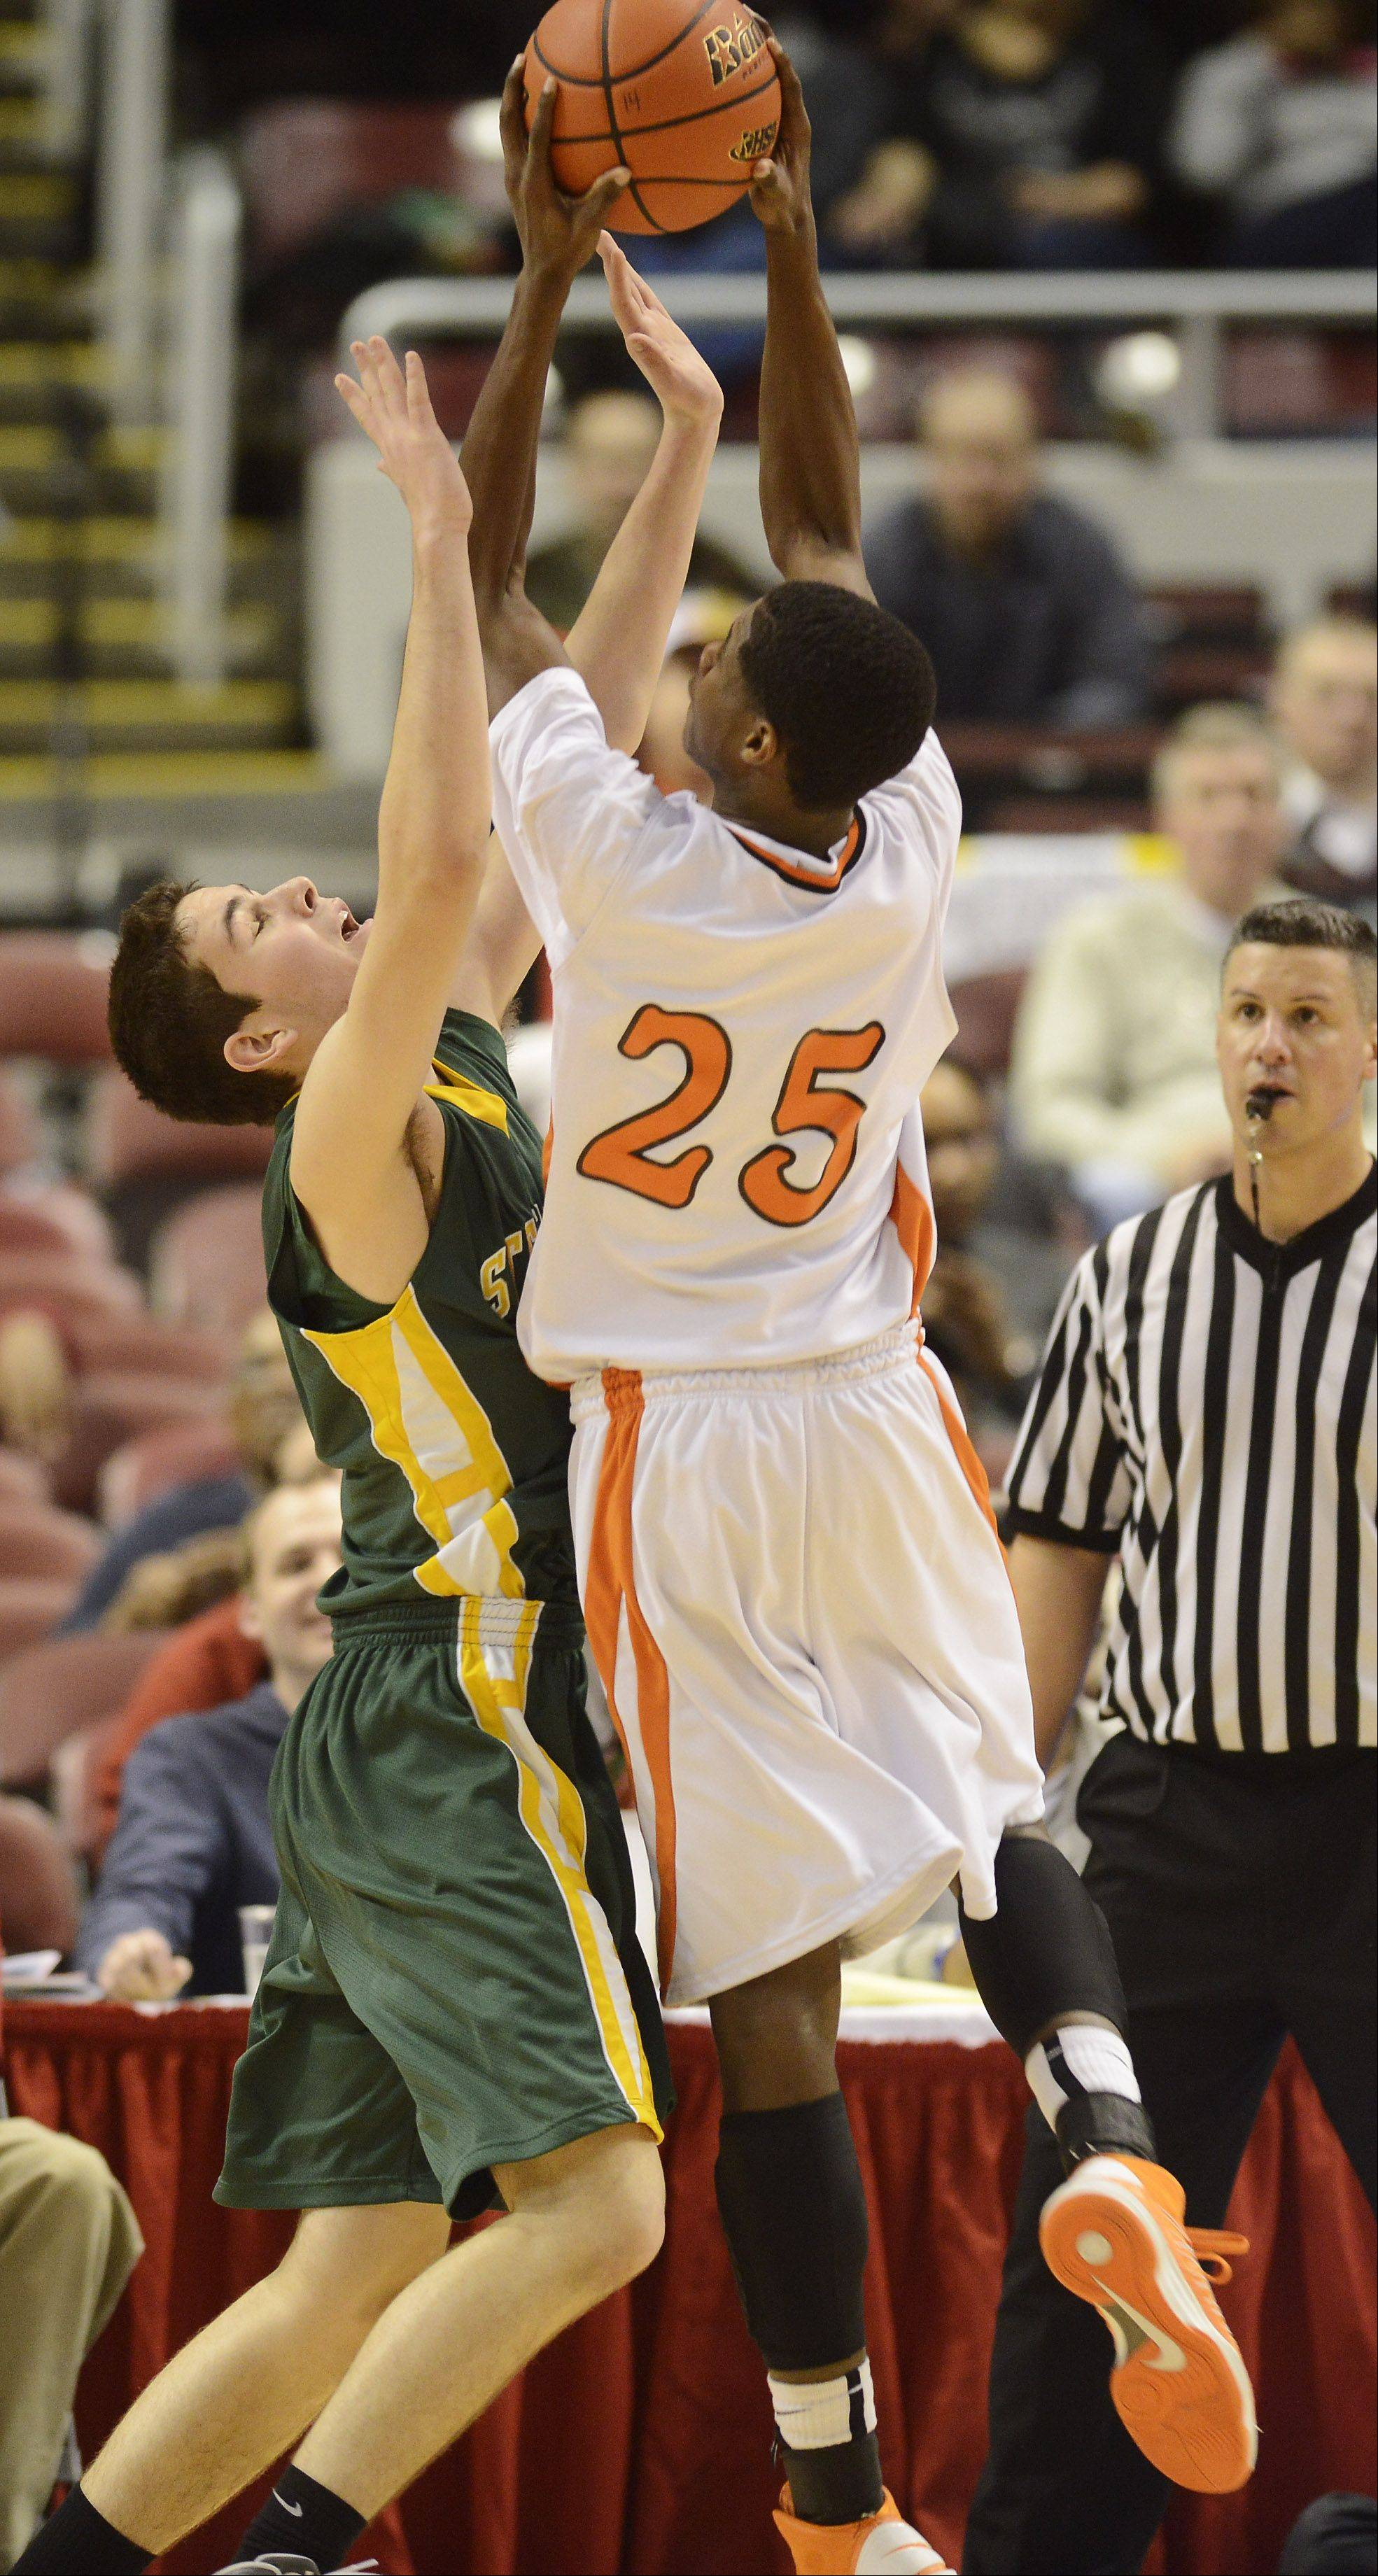 Stevenson's Matt Morrissey, left, closely guards Edwardsville's Armon Fletcher during the Class 4A boys basketball state semifinals at Carver Arena in Peoria on Friday.